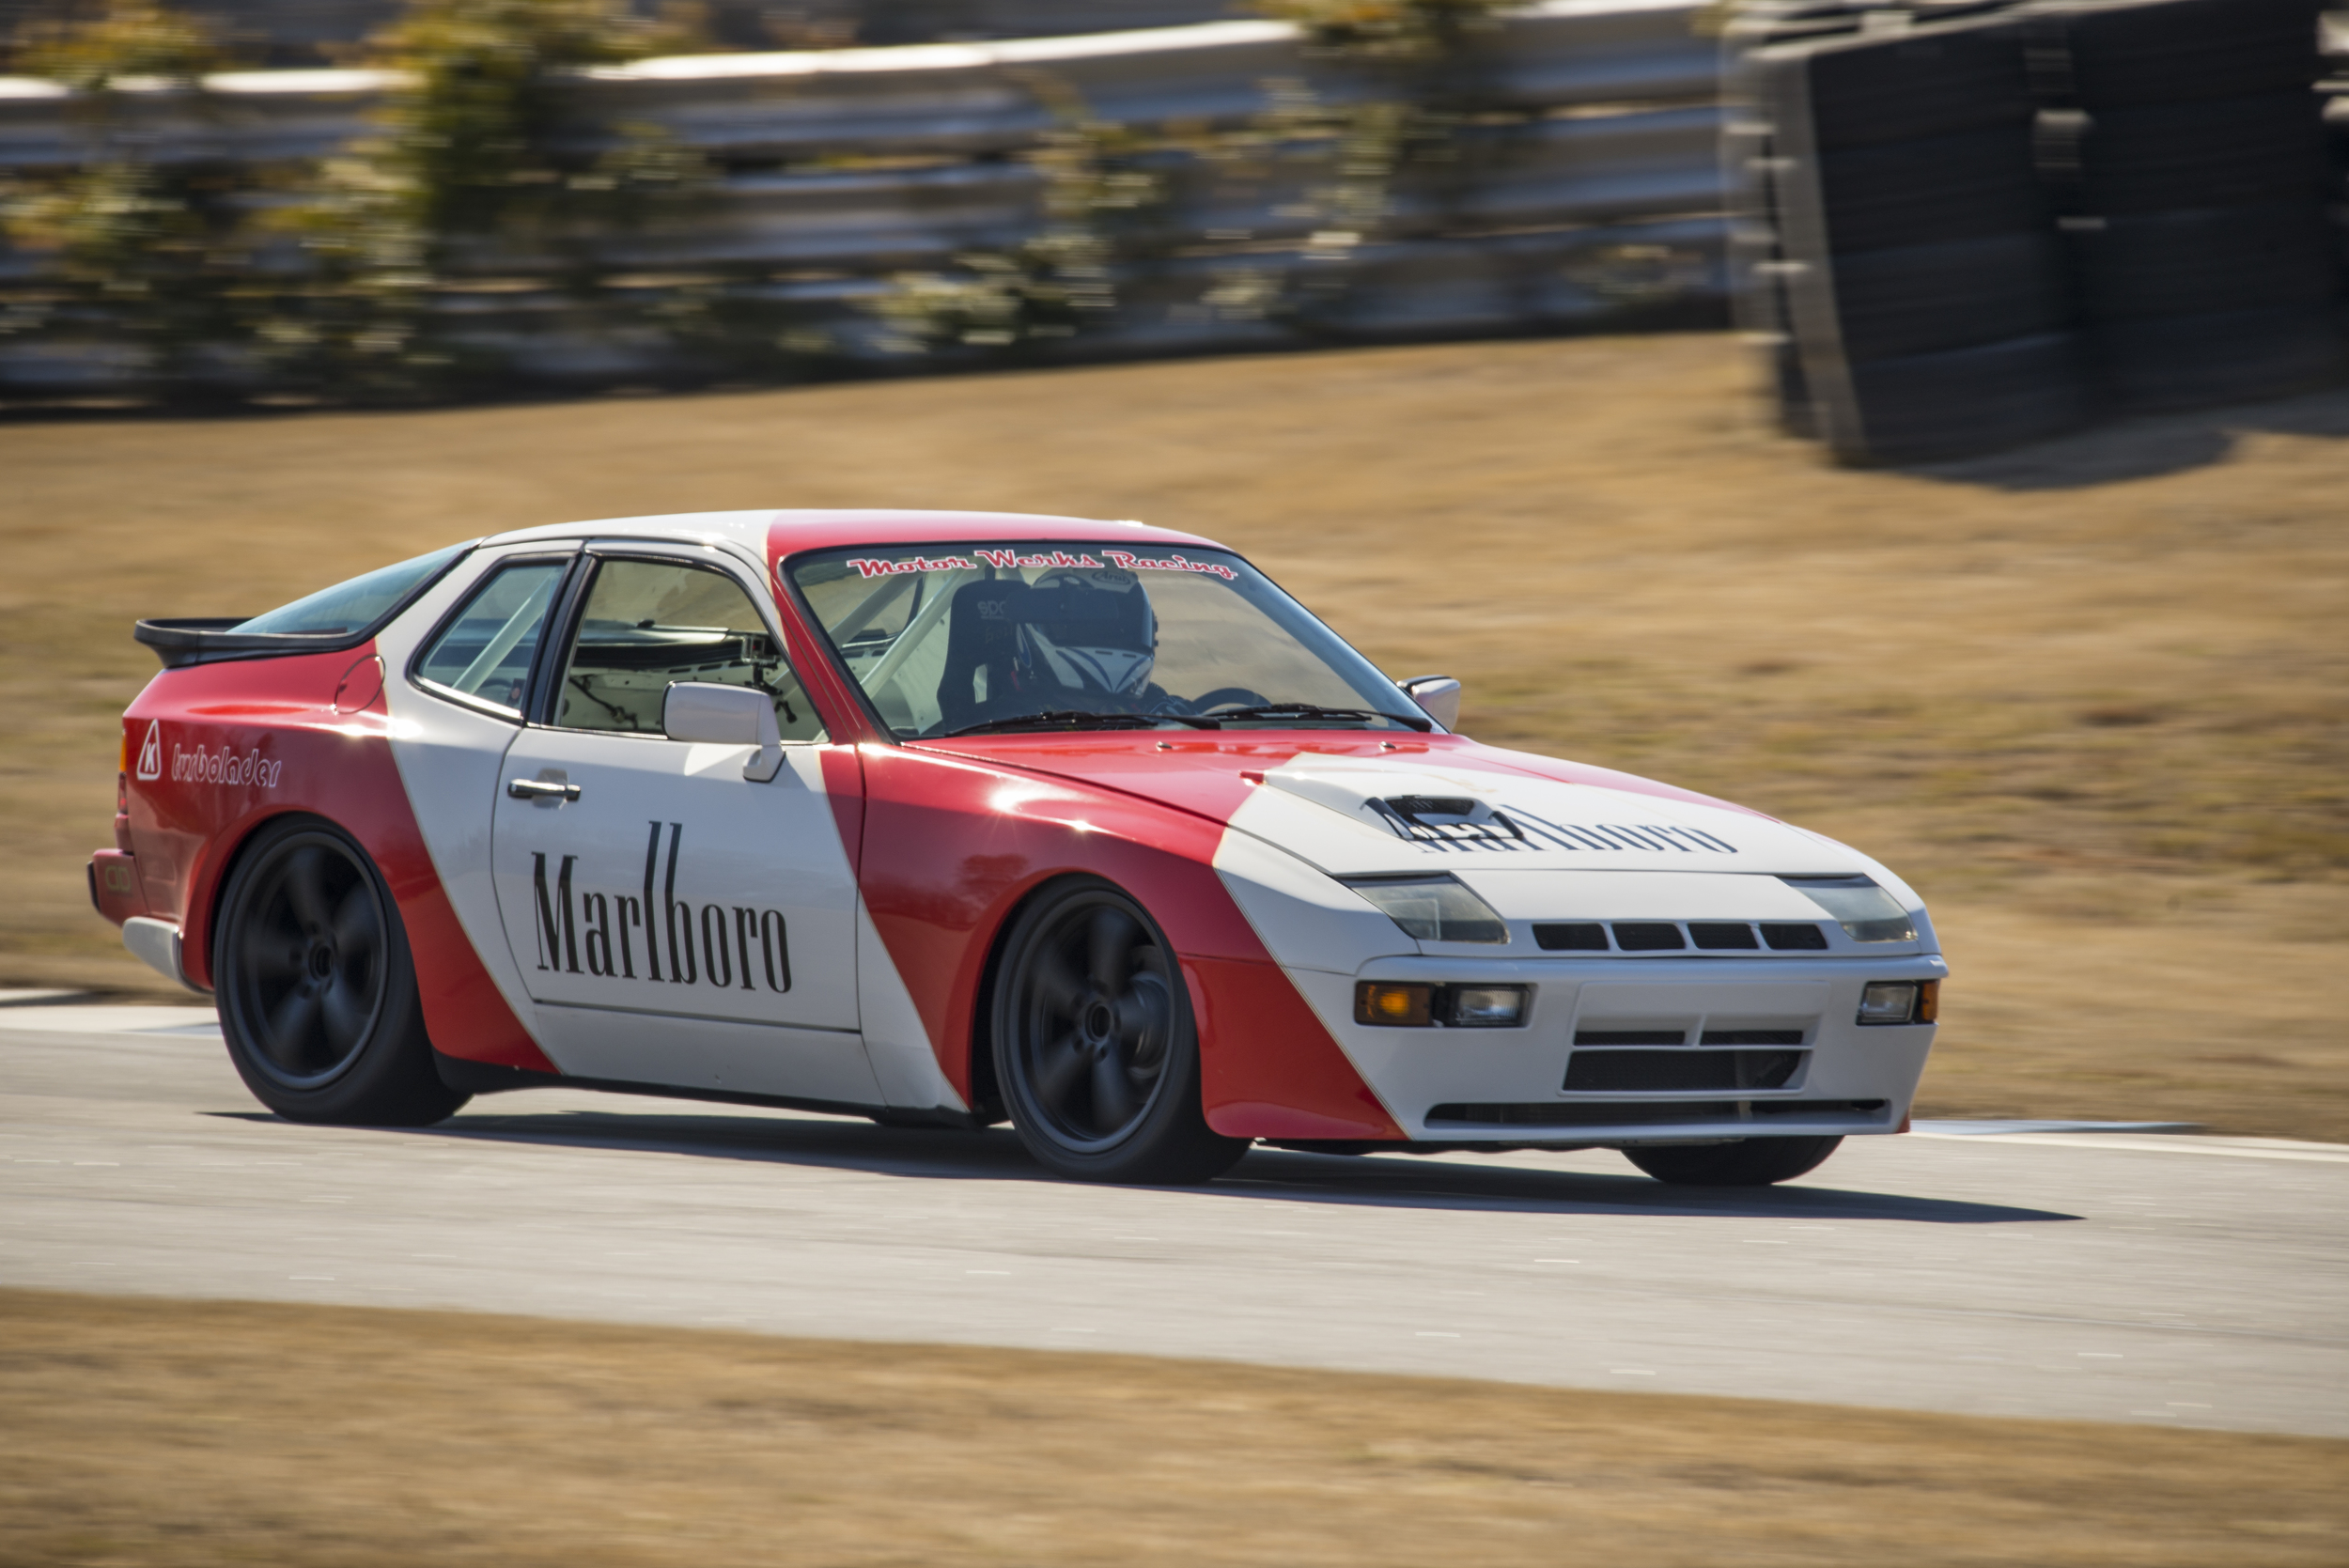 Motor Werks Racing Purpose Built Track Car - Porsche 944 Turbo